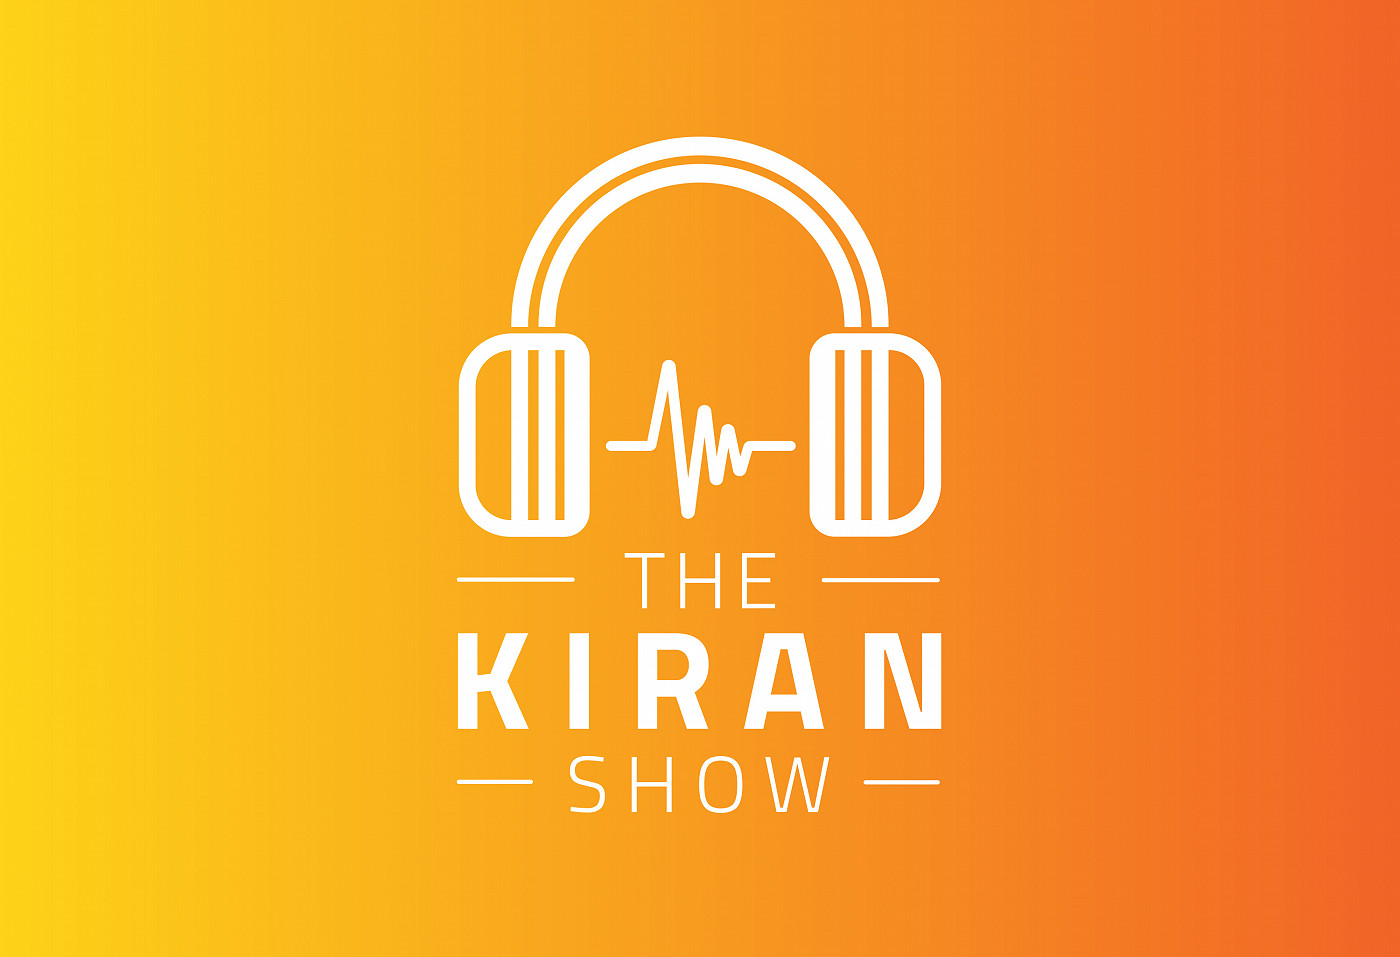 The Kiran Show Logo Design